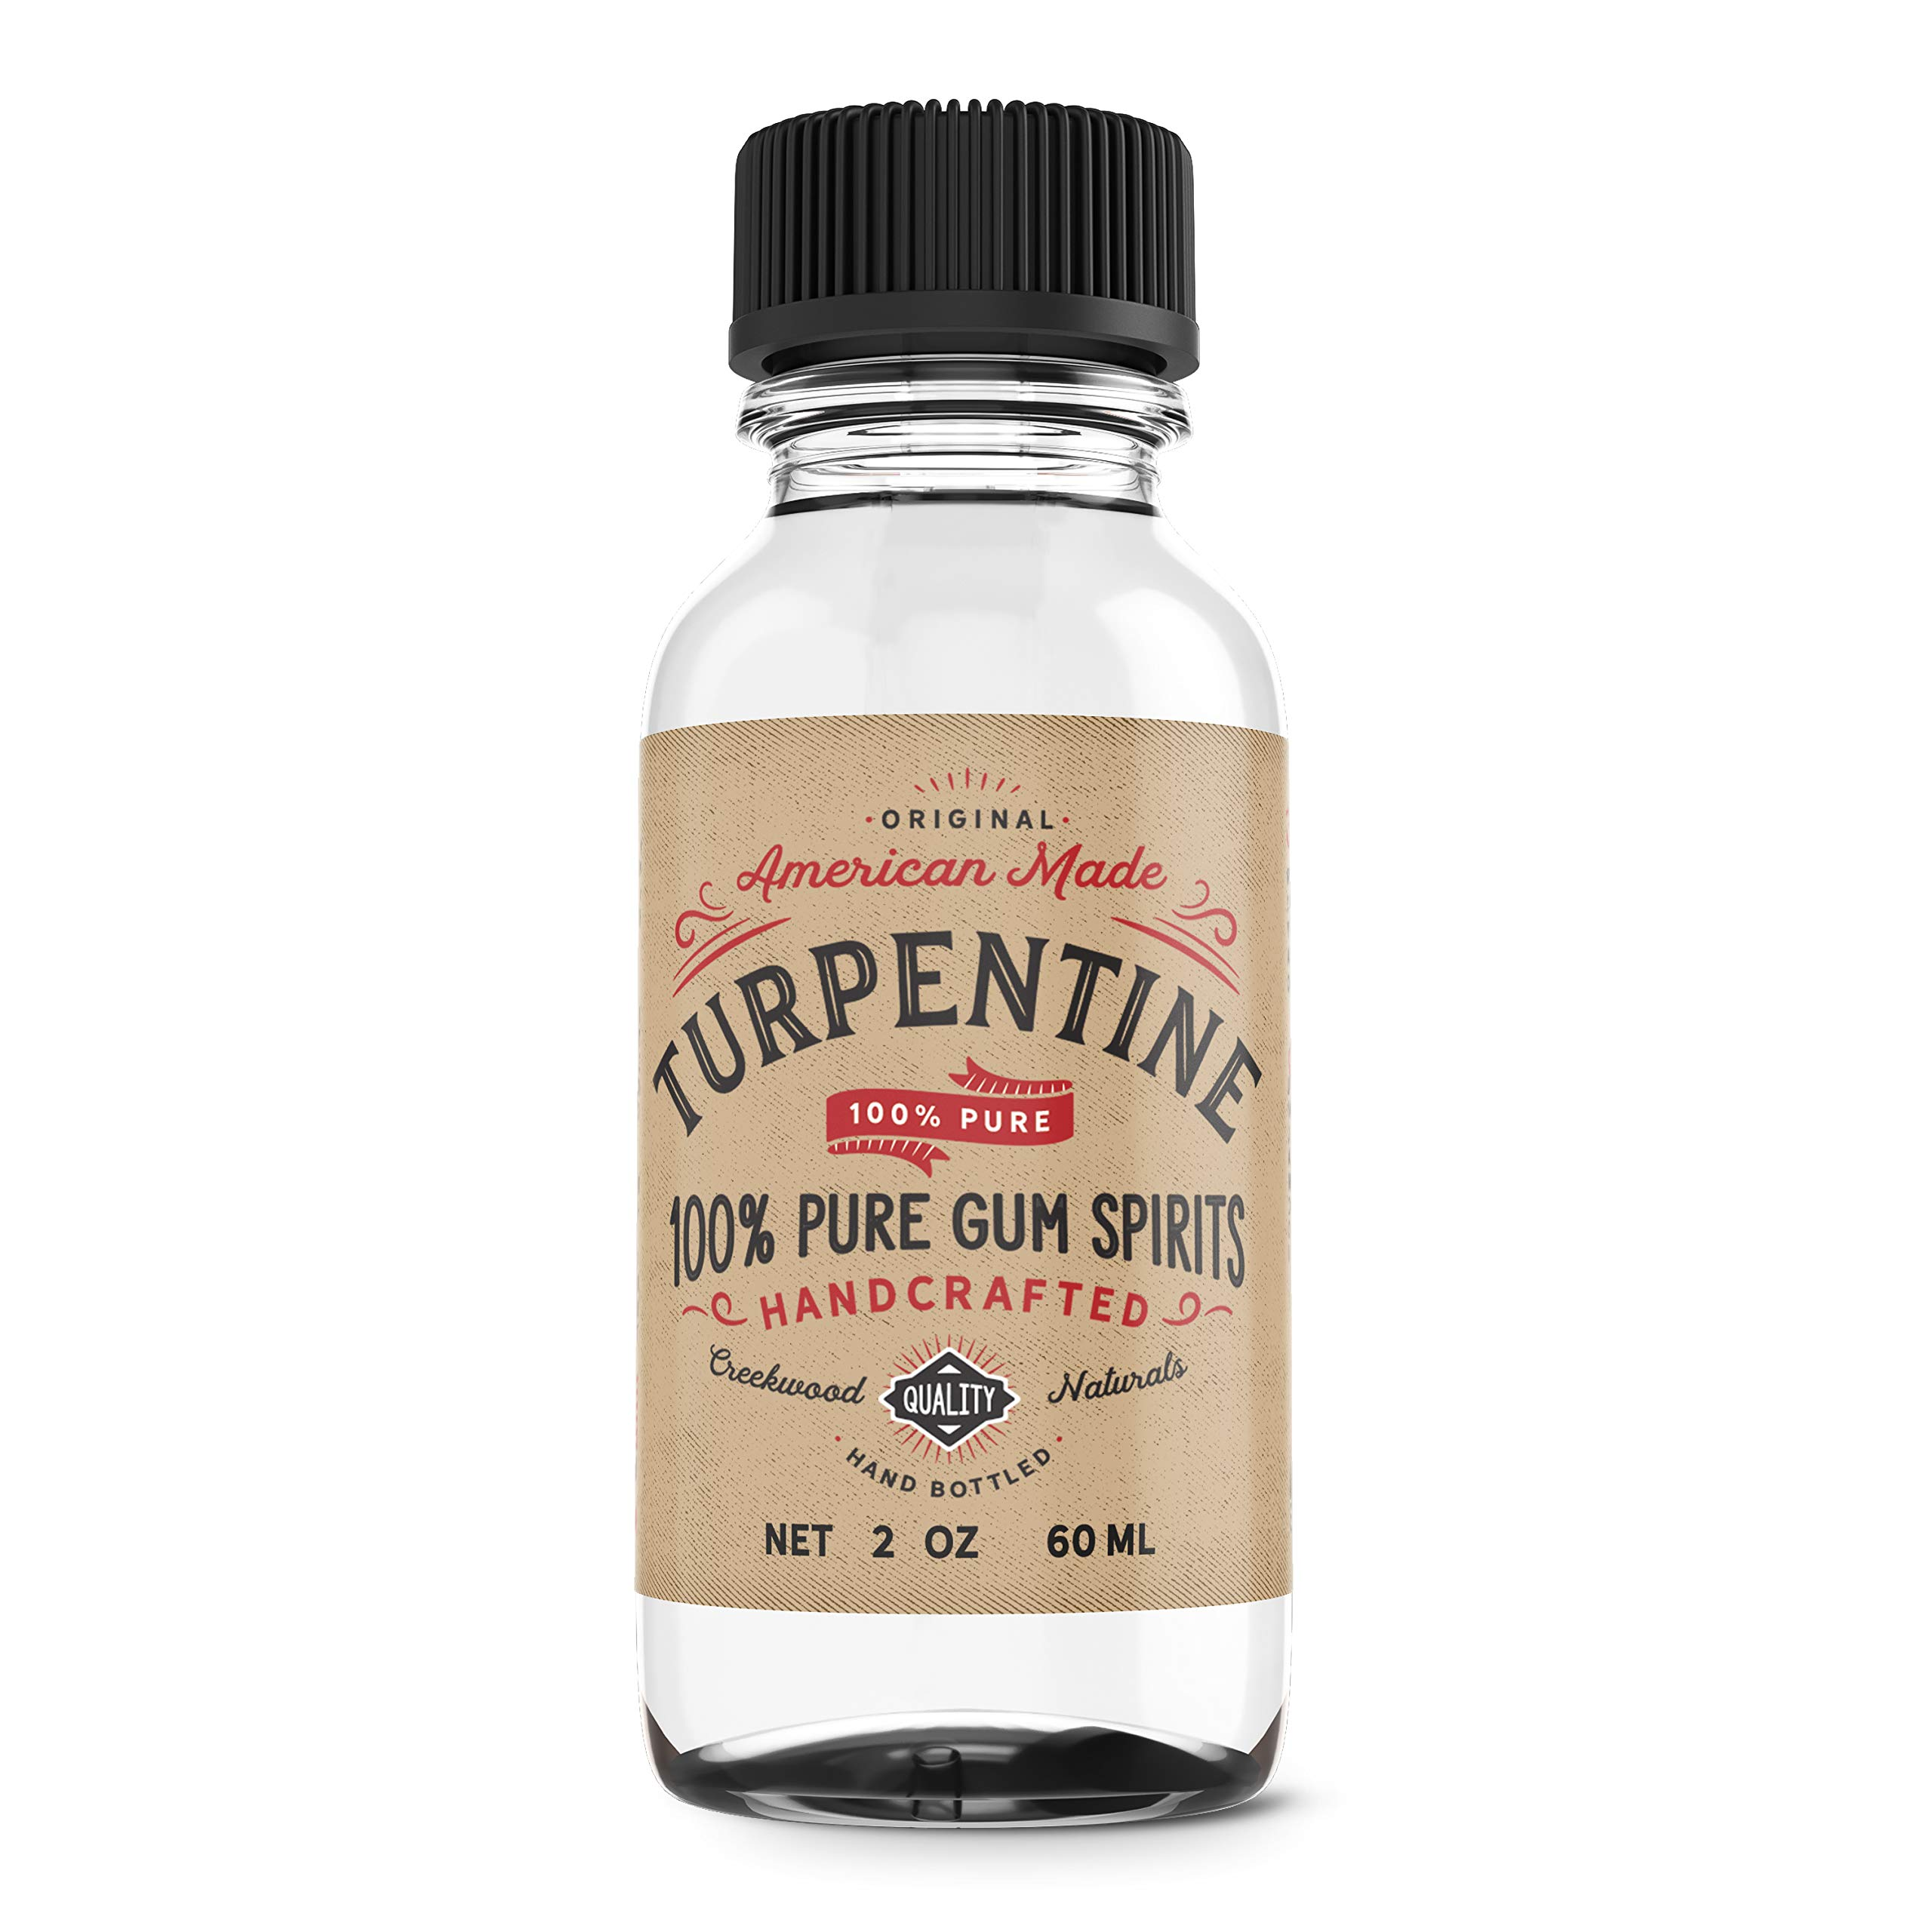 2 Ounce 100% Pure Gum Spirits of Turpentine